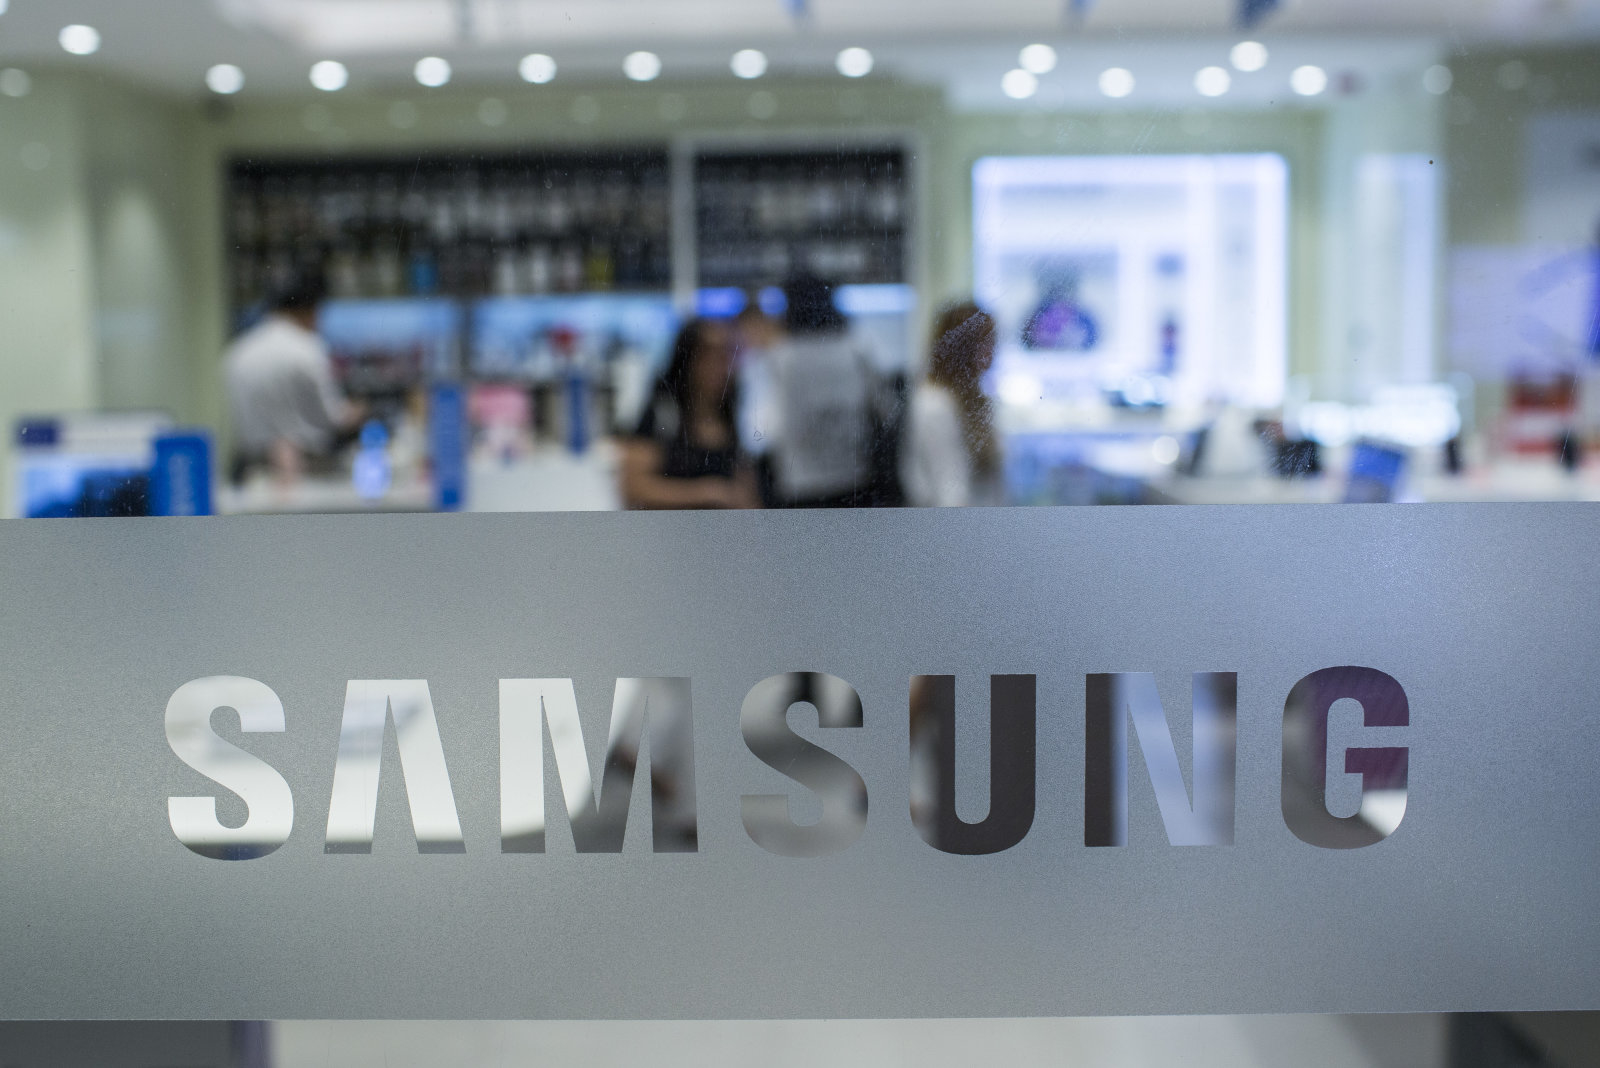 Signage is displayed on a window at a Samsung Electronics Co. Partnershop retail store in Hong Kong, China, on Tuesday, Oct. 11, 2016. Samsung Electronics Co. is ending production of its problematic Galaxy Note 7 smartphones, taking the drastic step of killing off a smartphone that became a major headache for South Koreas largest company. Photographer: Justin Chin/Bloomberg via Getty Images